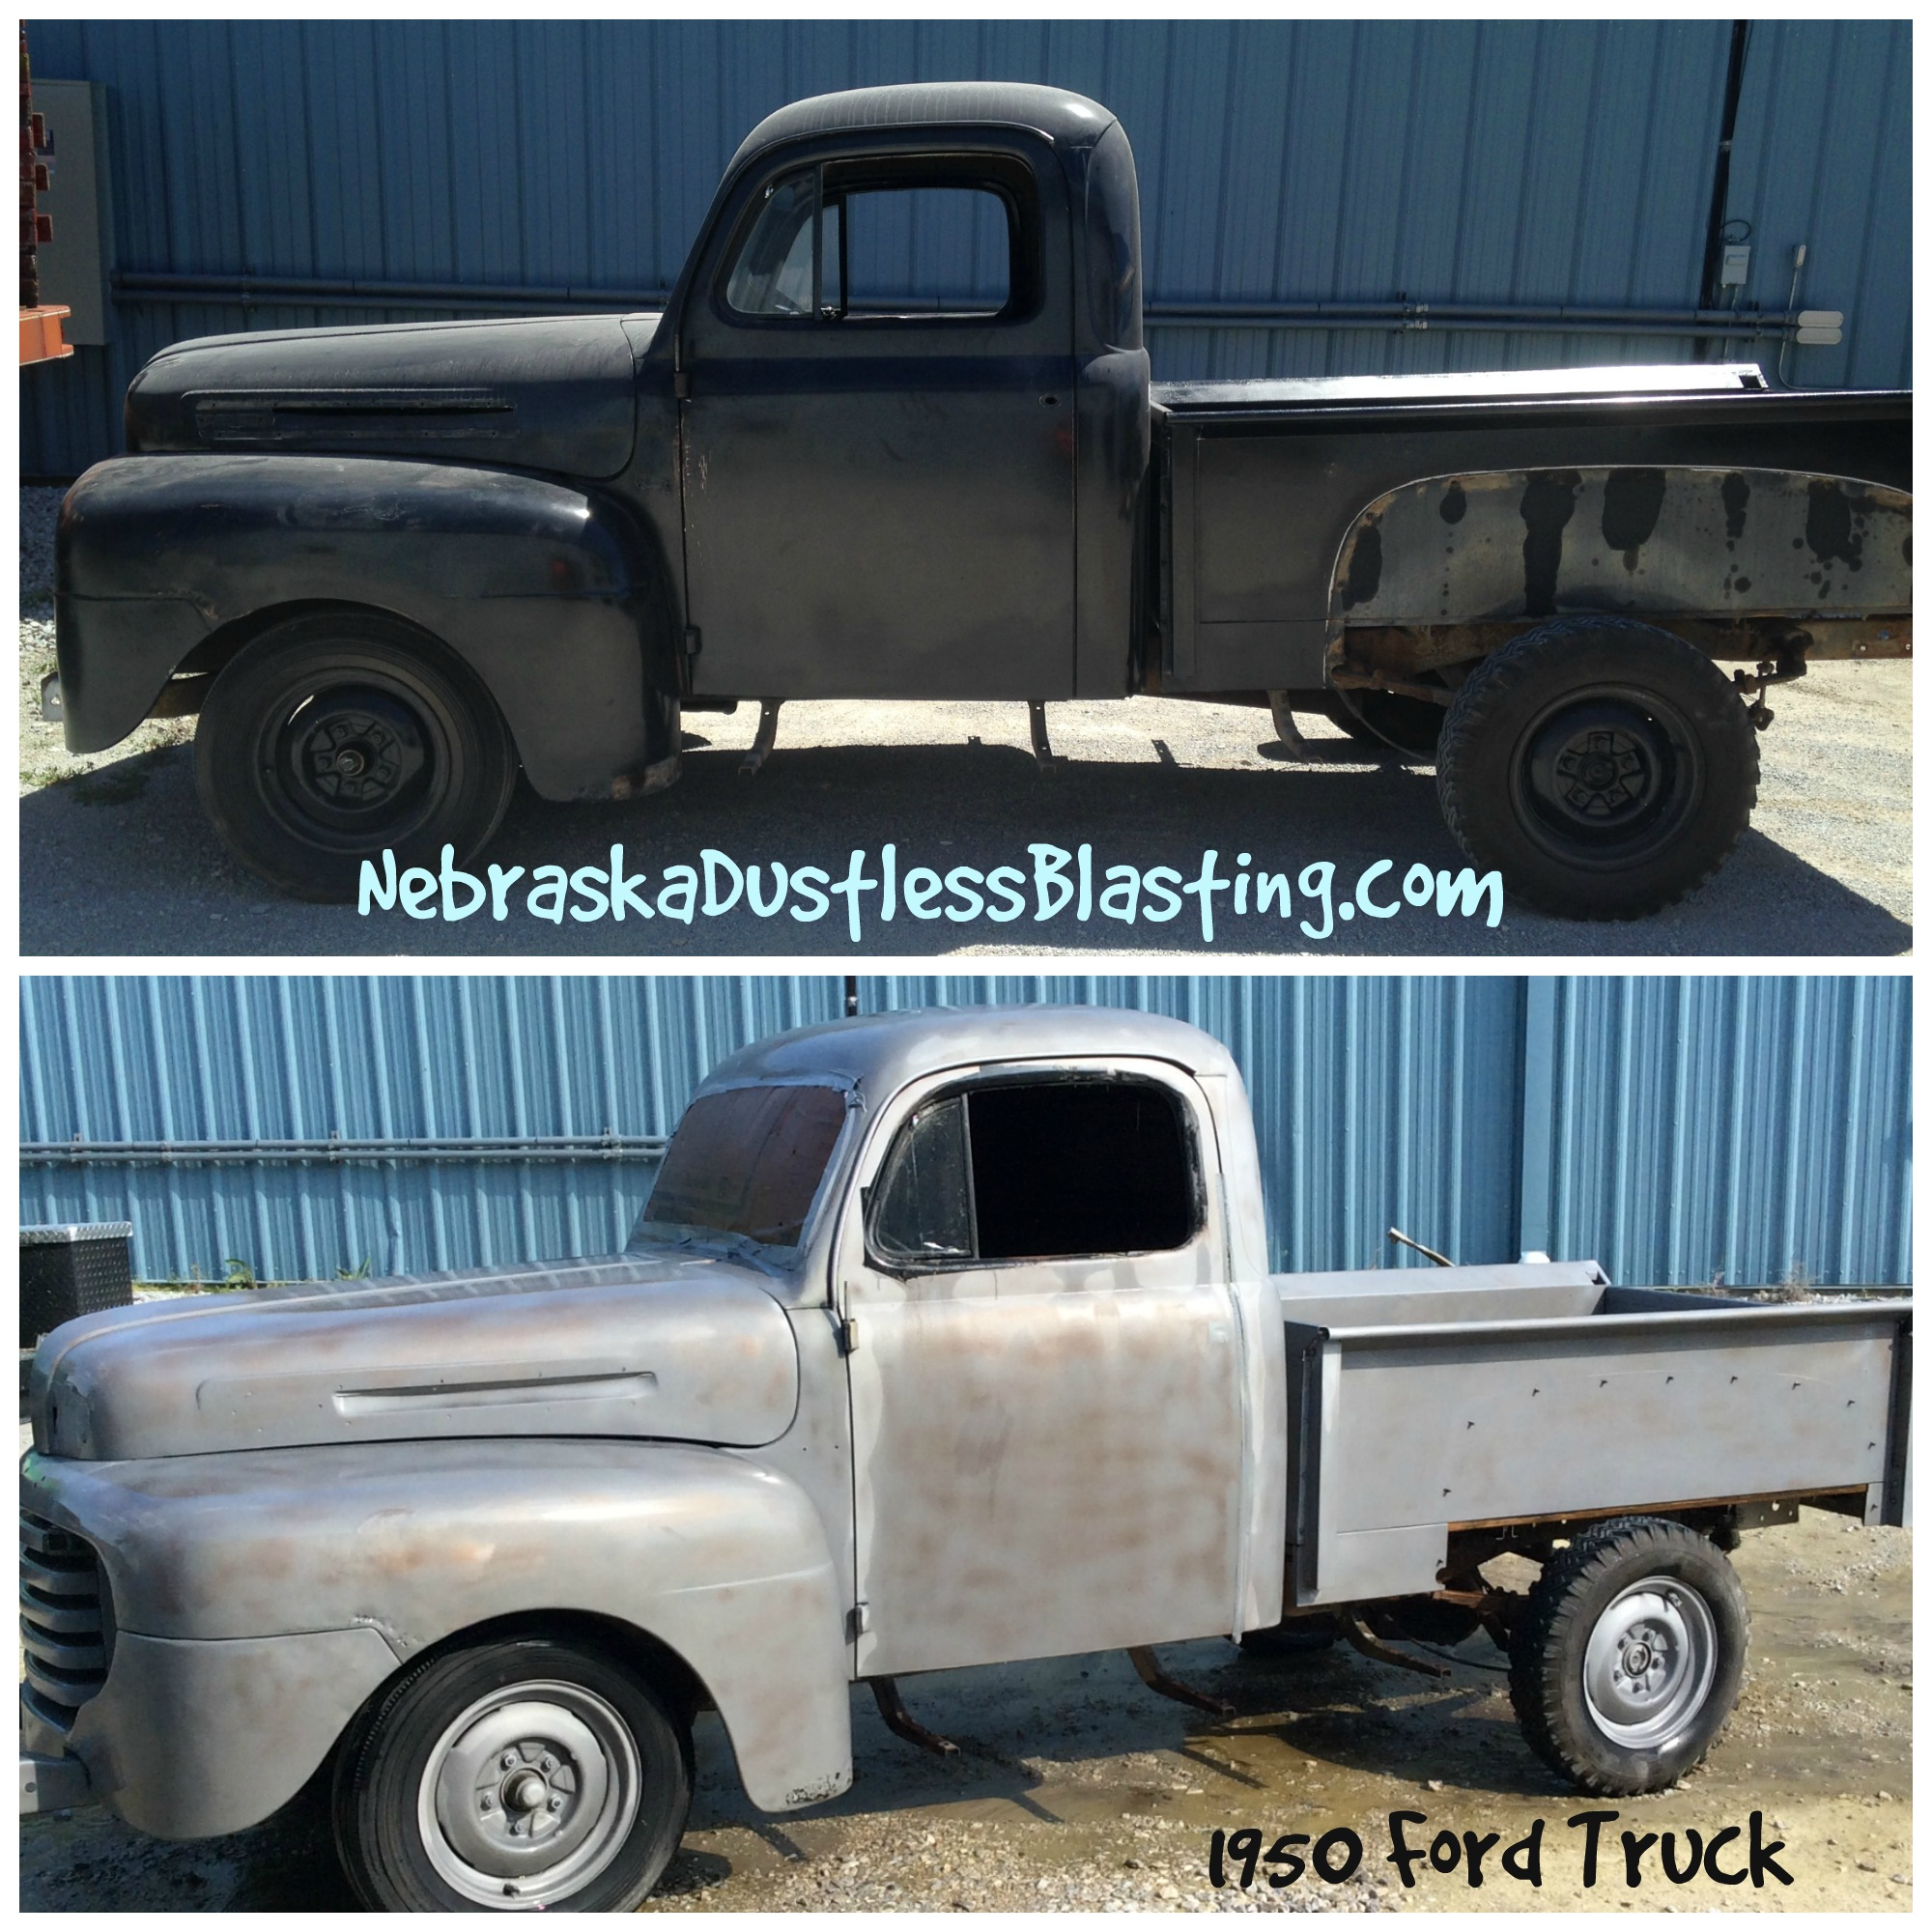 http://nebraskadustlessblasting.com/wp-content/uploads/2015/05/1950-Ford-Before-and-After-Collage.jpg